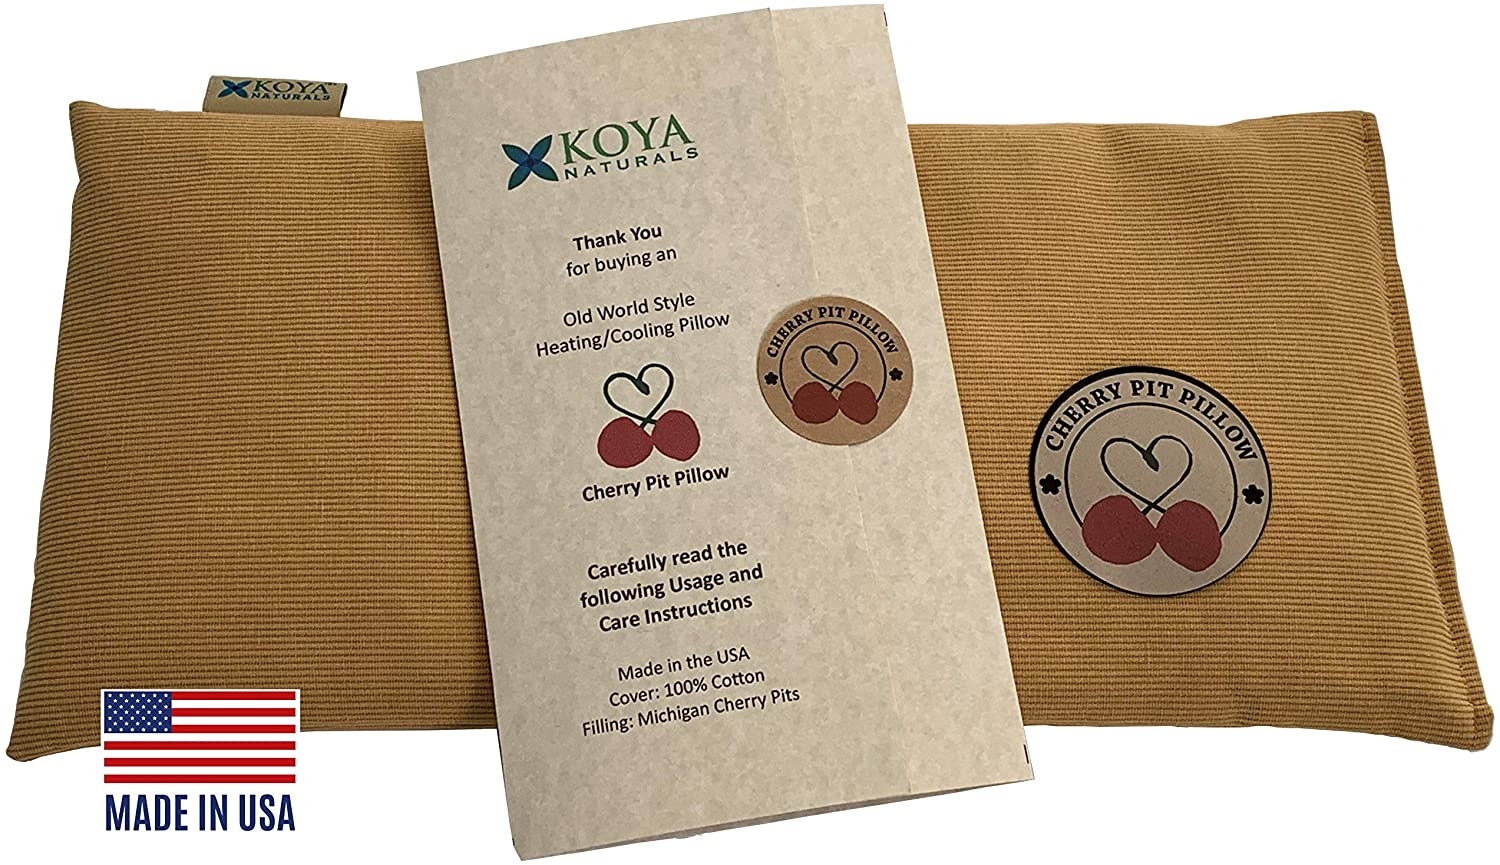 KOYA Naturals Heating Pad Microwavable - Cherry Pit/Stone/Seed Pillow Heat Pack for Neck, Muscles, Joints, Stomach Pain, Menstrual Cramps - Warm Compress Neck Wrap - Moist Heat Therapy (Amber)